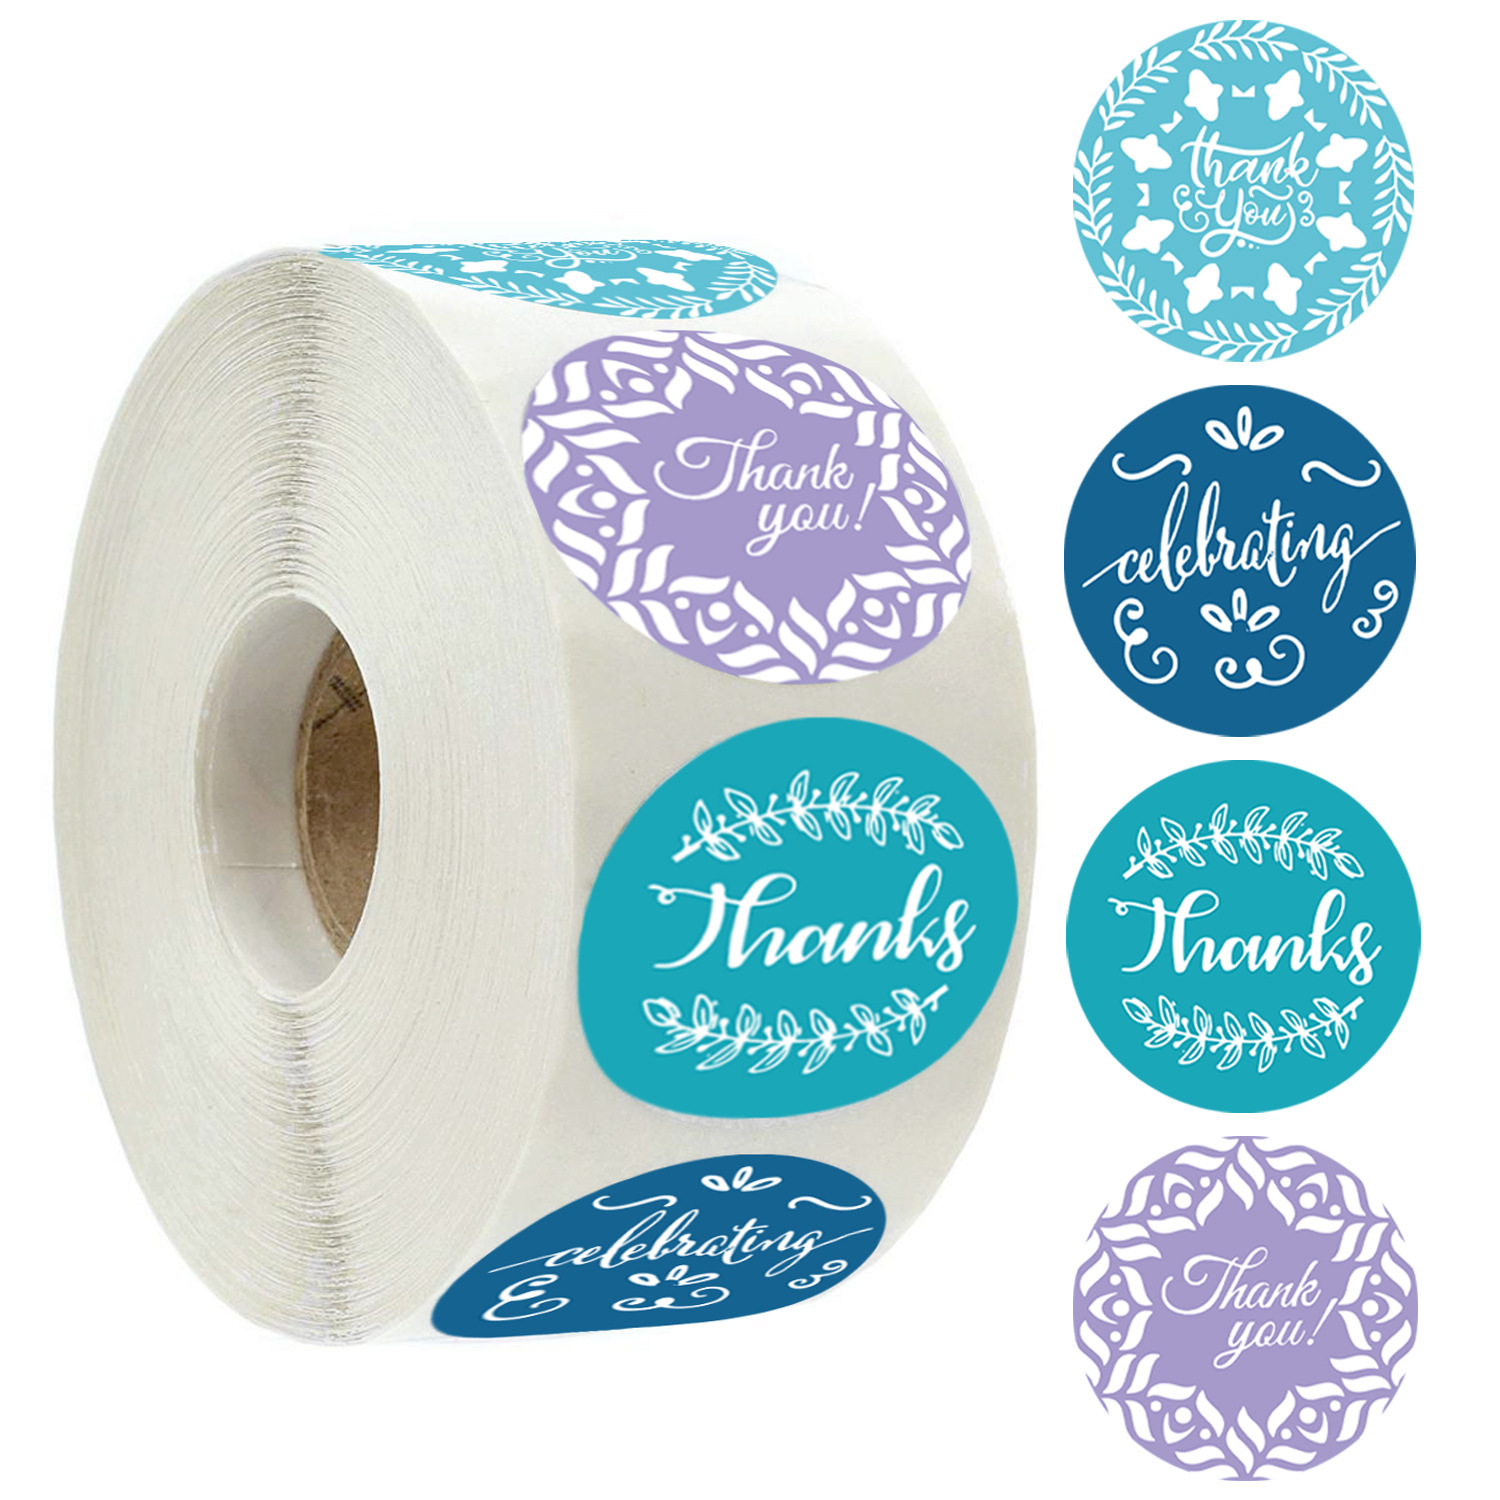 Round Paper Thank You Stickers Scrapbooking 500pcs 1inch Wedding Celebrating Seal Label Stickers Roll Stationery Stickers